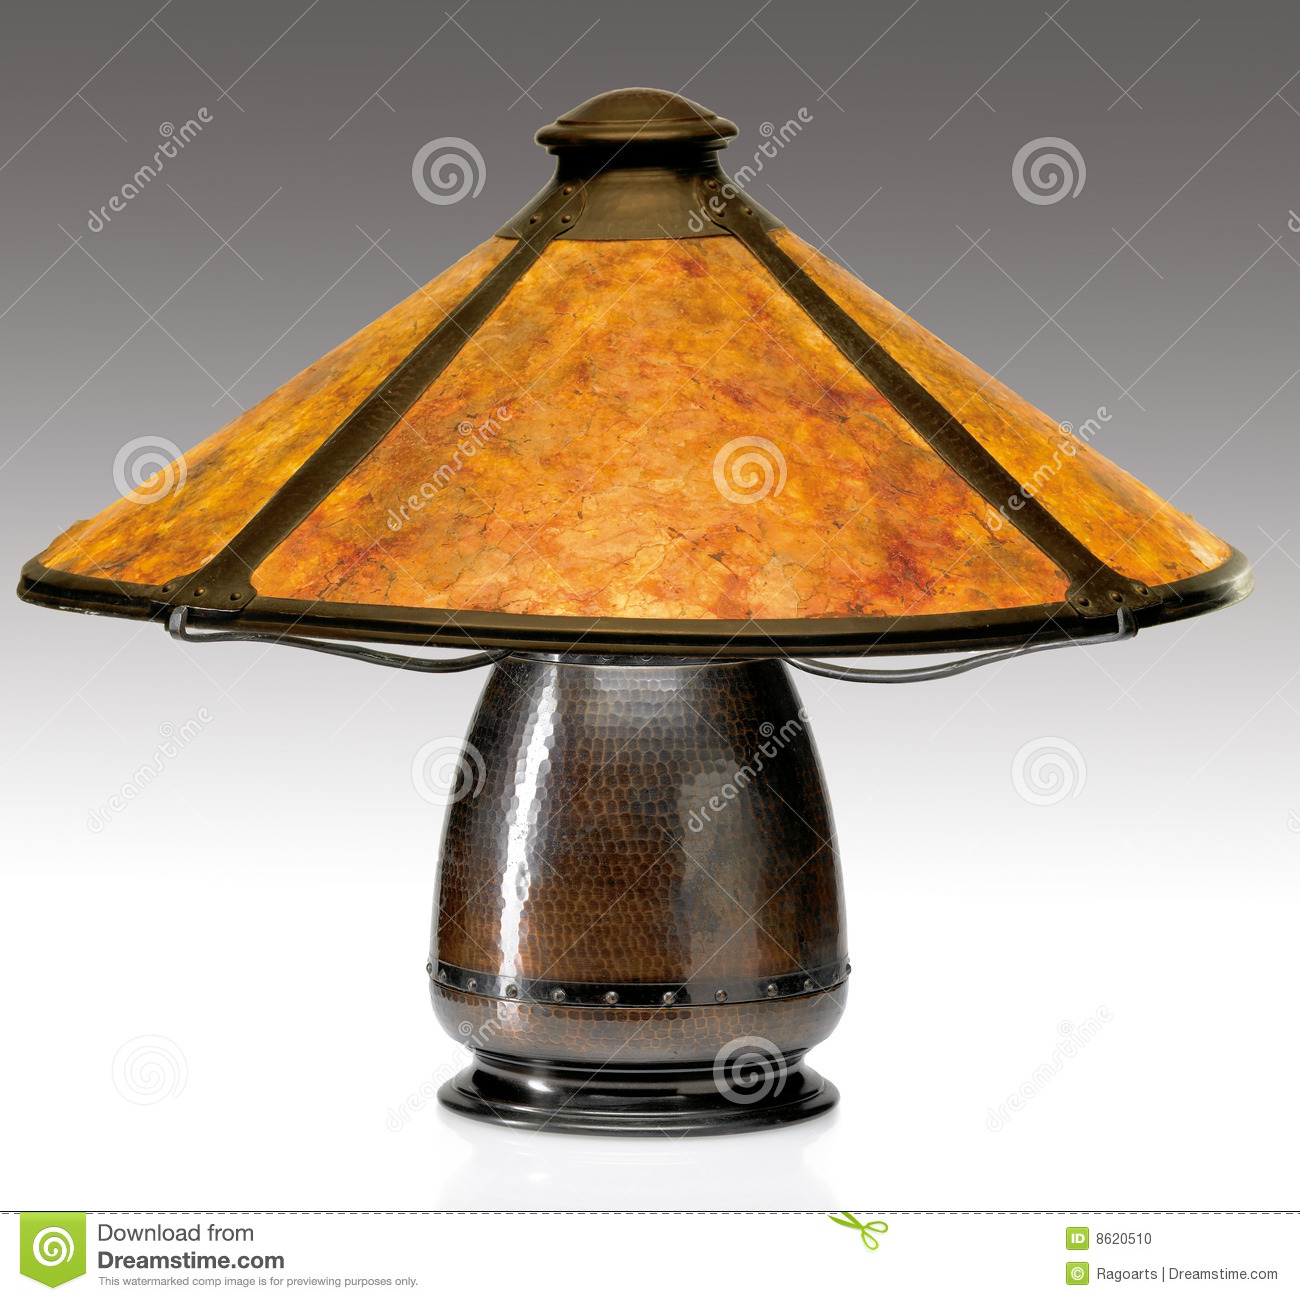 Arts and Crafts Mica Shade Table Lamp - Arts And Crafts Mica Shade Table Lamp Editorial Image - Image: 8620510